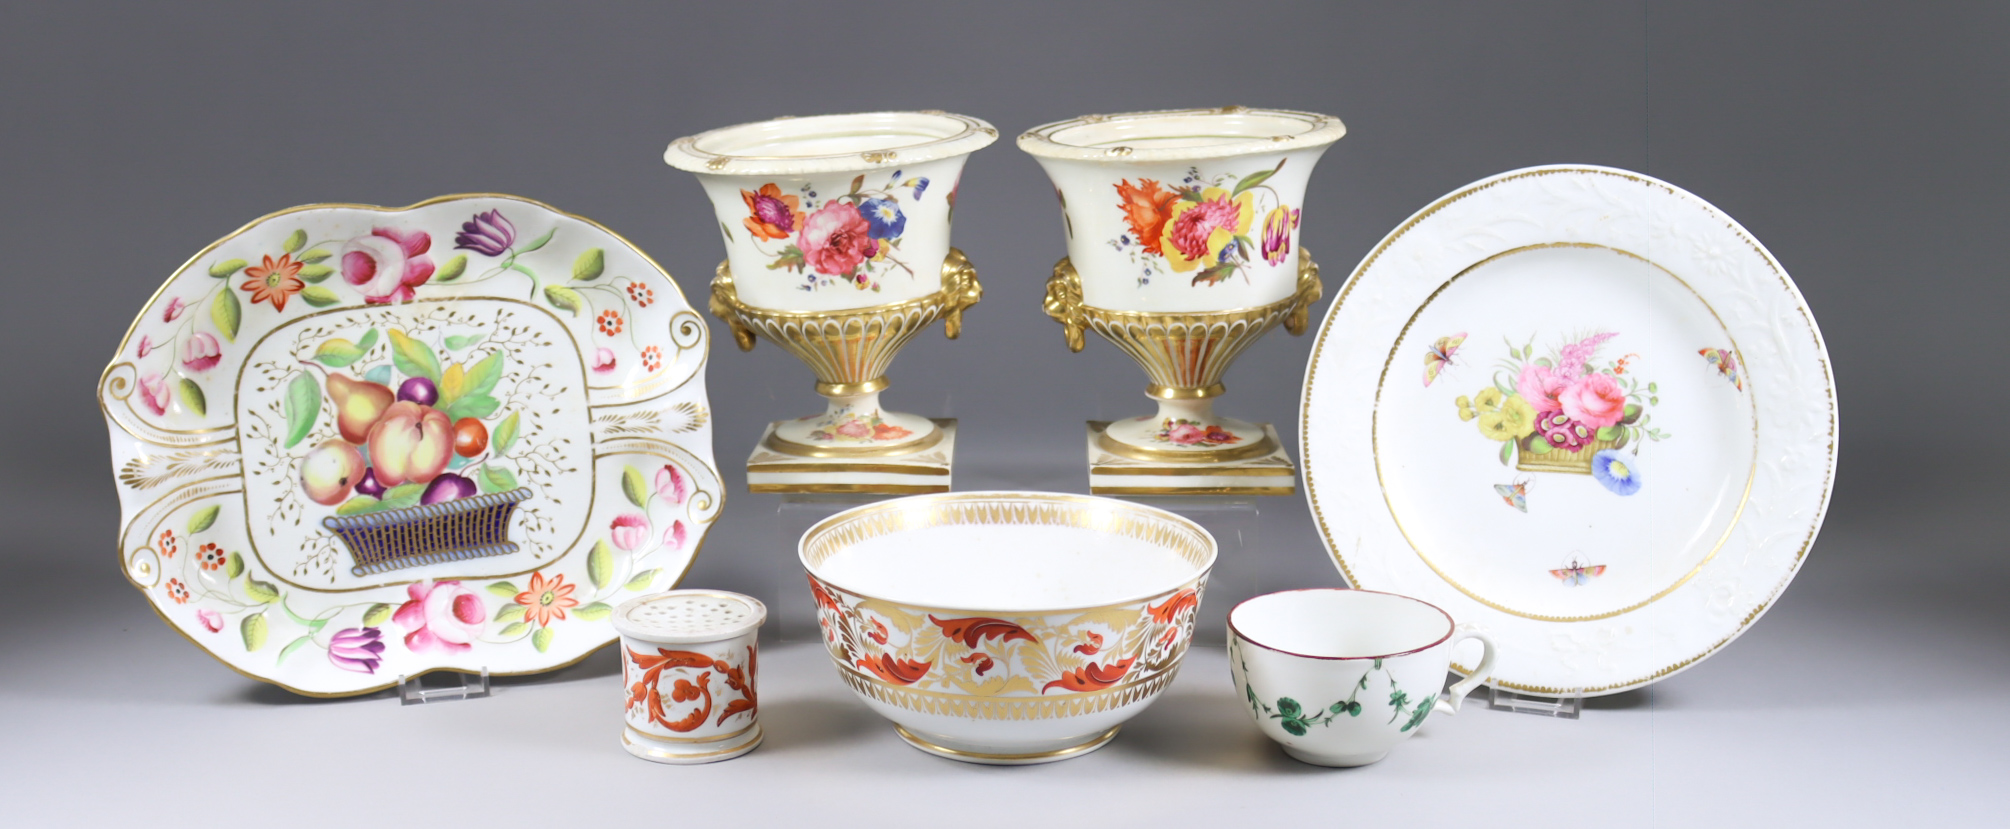 A Collection of English Porcelain Table Wares, 19th Century, including - moulded dish of shaped